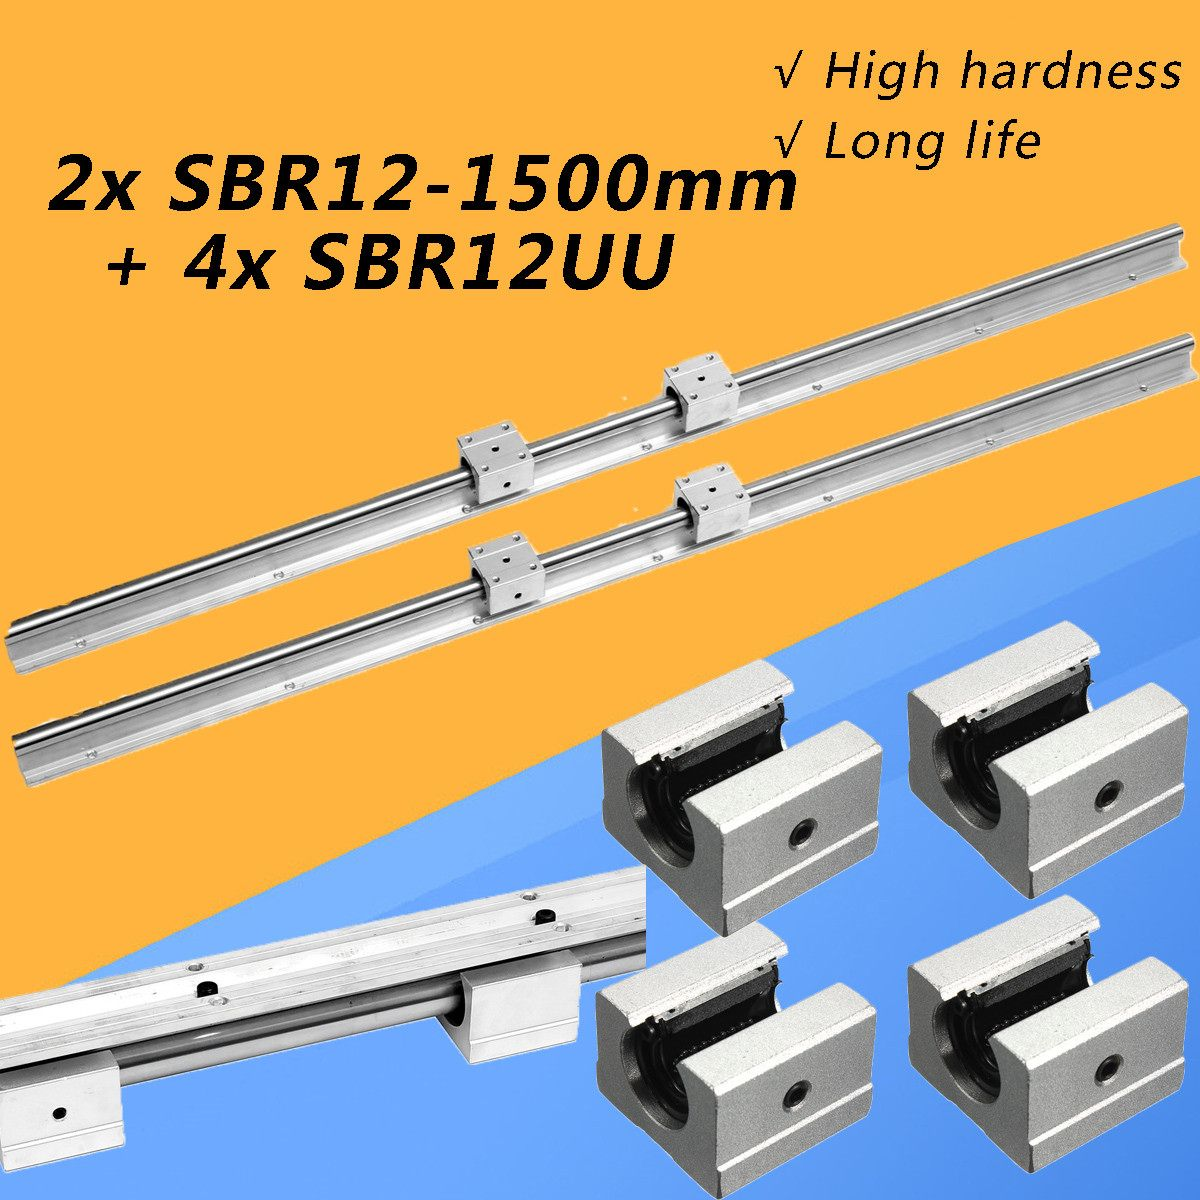 2Set SBR12 1500mm Fully Supported Linear Rail Slide Shaft Rod Optical Axis Guide With 4Pcs SBR12UU Bearing Block2Set SBR12 1500mm Fully Supported Linear Rail Slide Shaft Rod Optical Axis Guide With 4Pcs SBR12UU Bearing Block